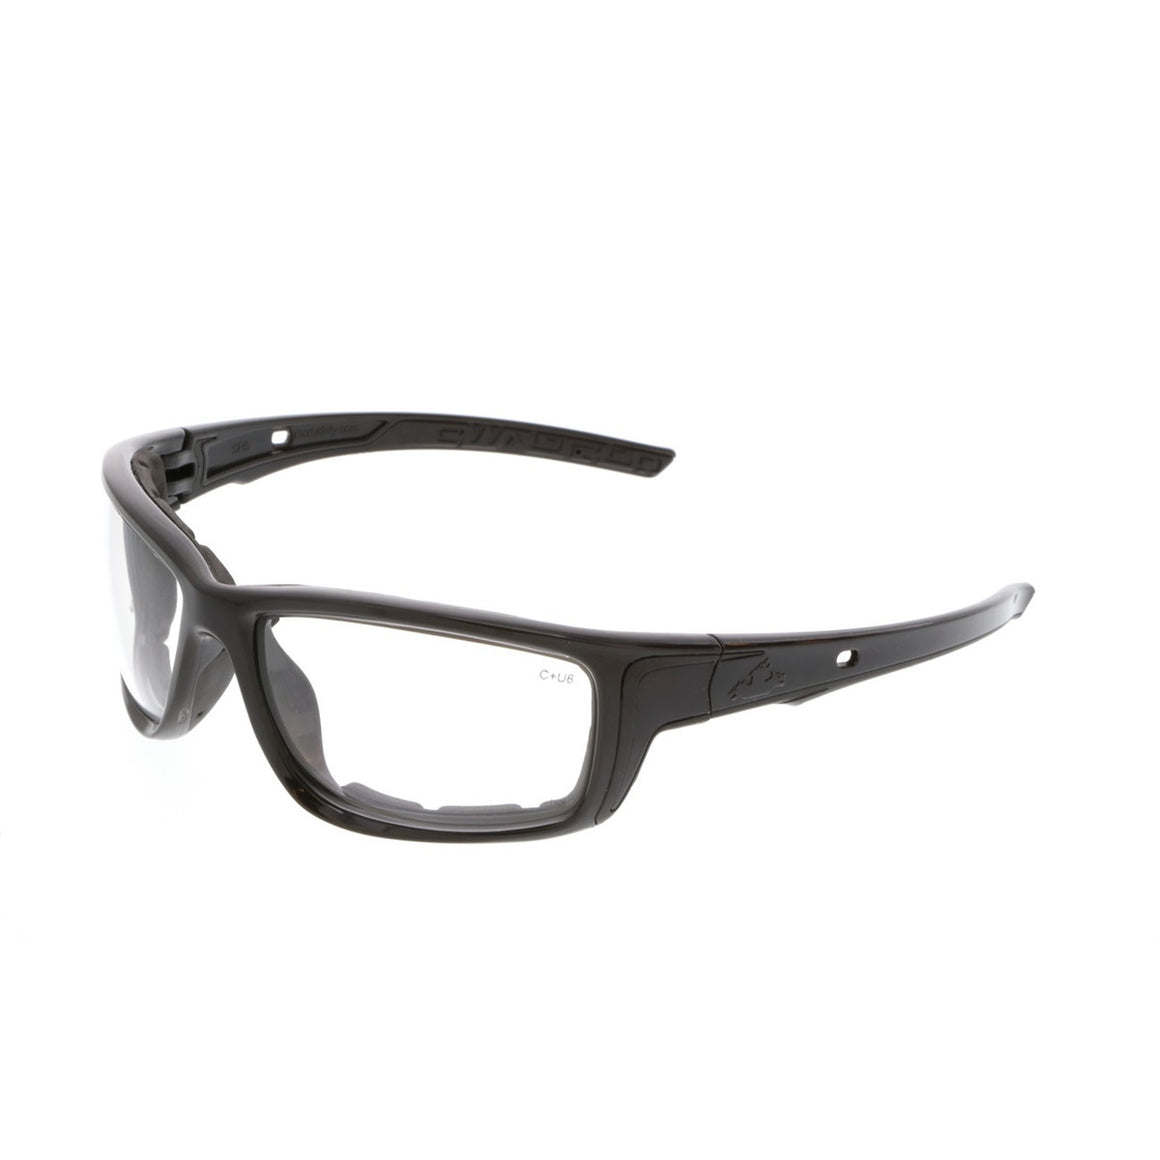 MCR Swagger SR5 Safety Glasses, Gray Foam Lined Frame, Clear MAX6 Anti-Fog Lens